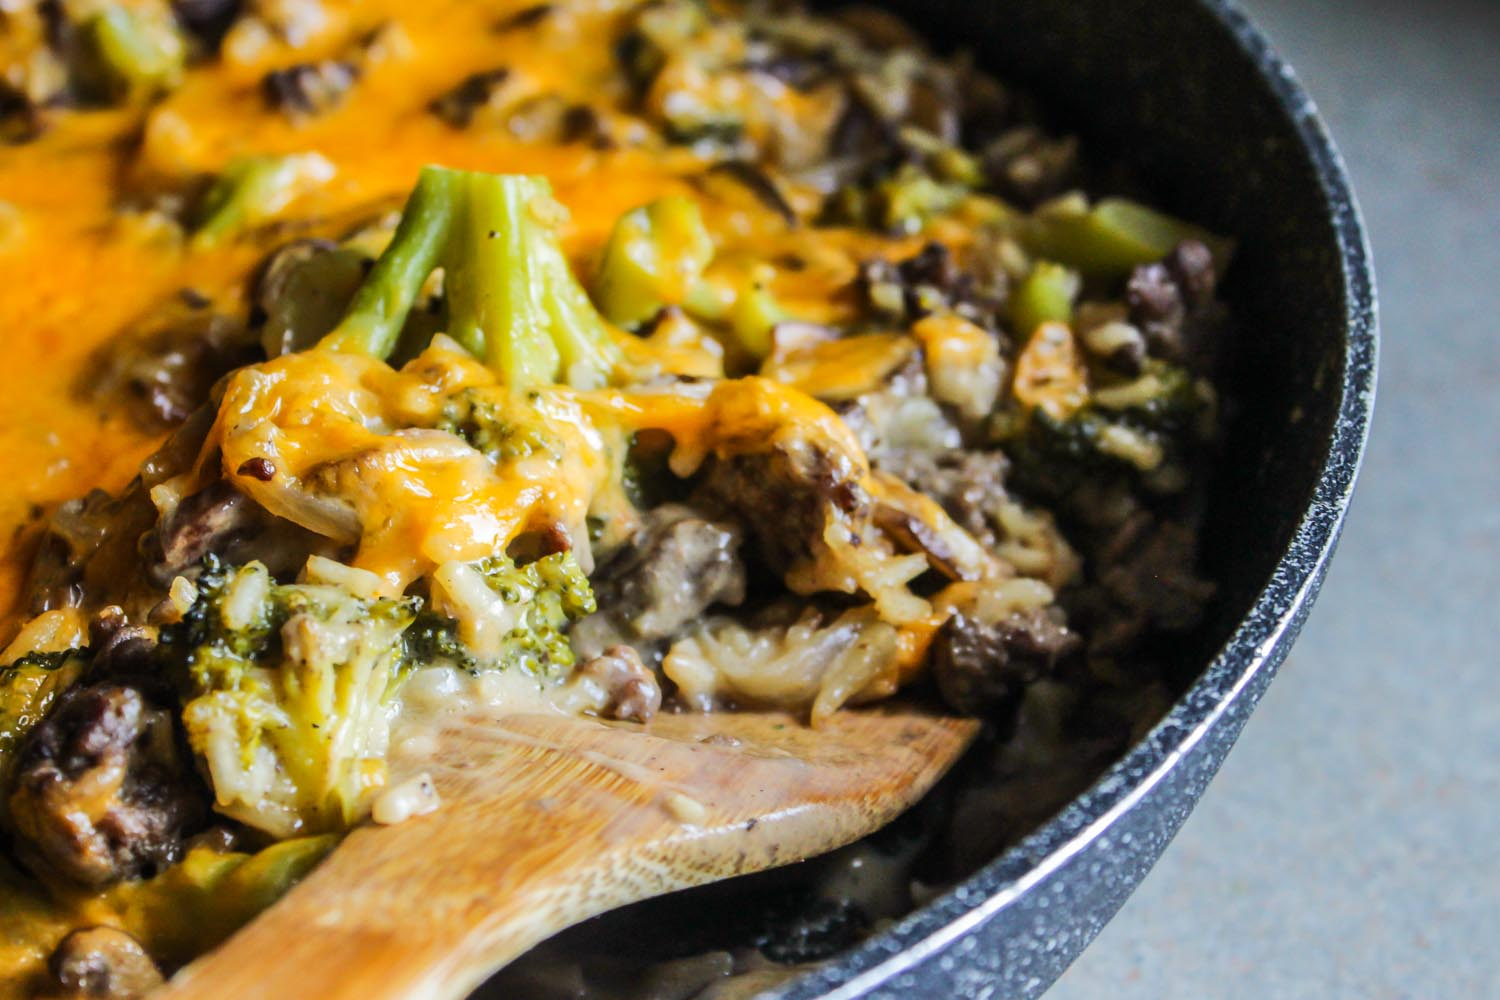 Skillet CheesyBeef and Rice Broccoli Casserole LisaGCooks.com